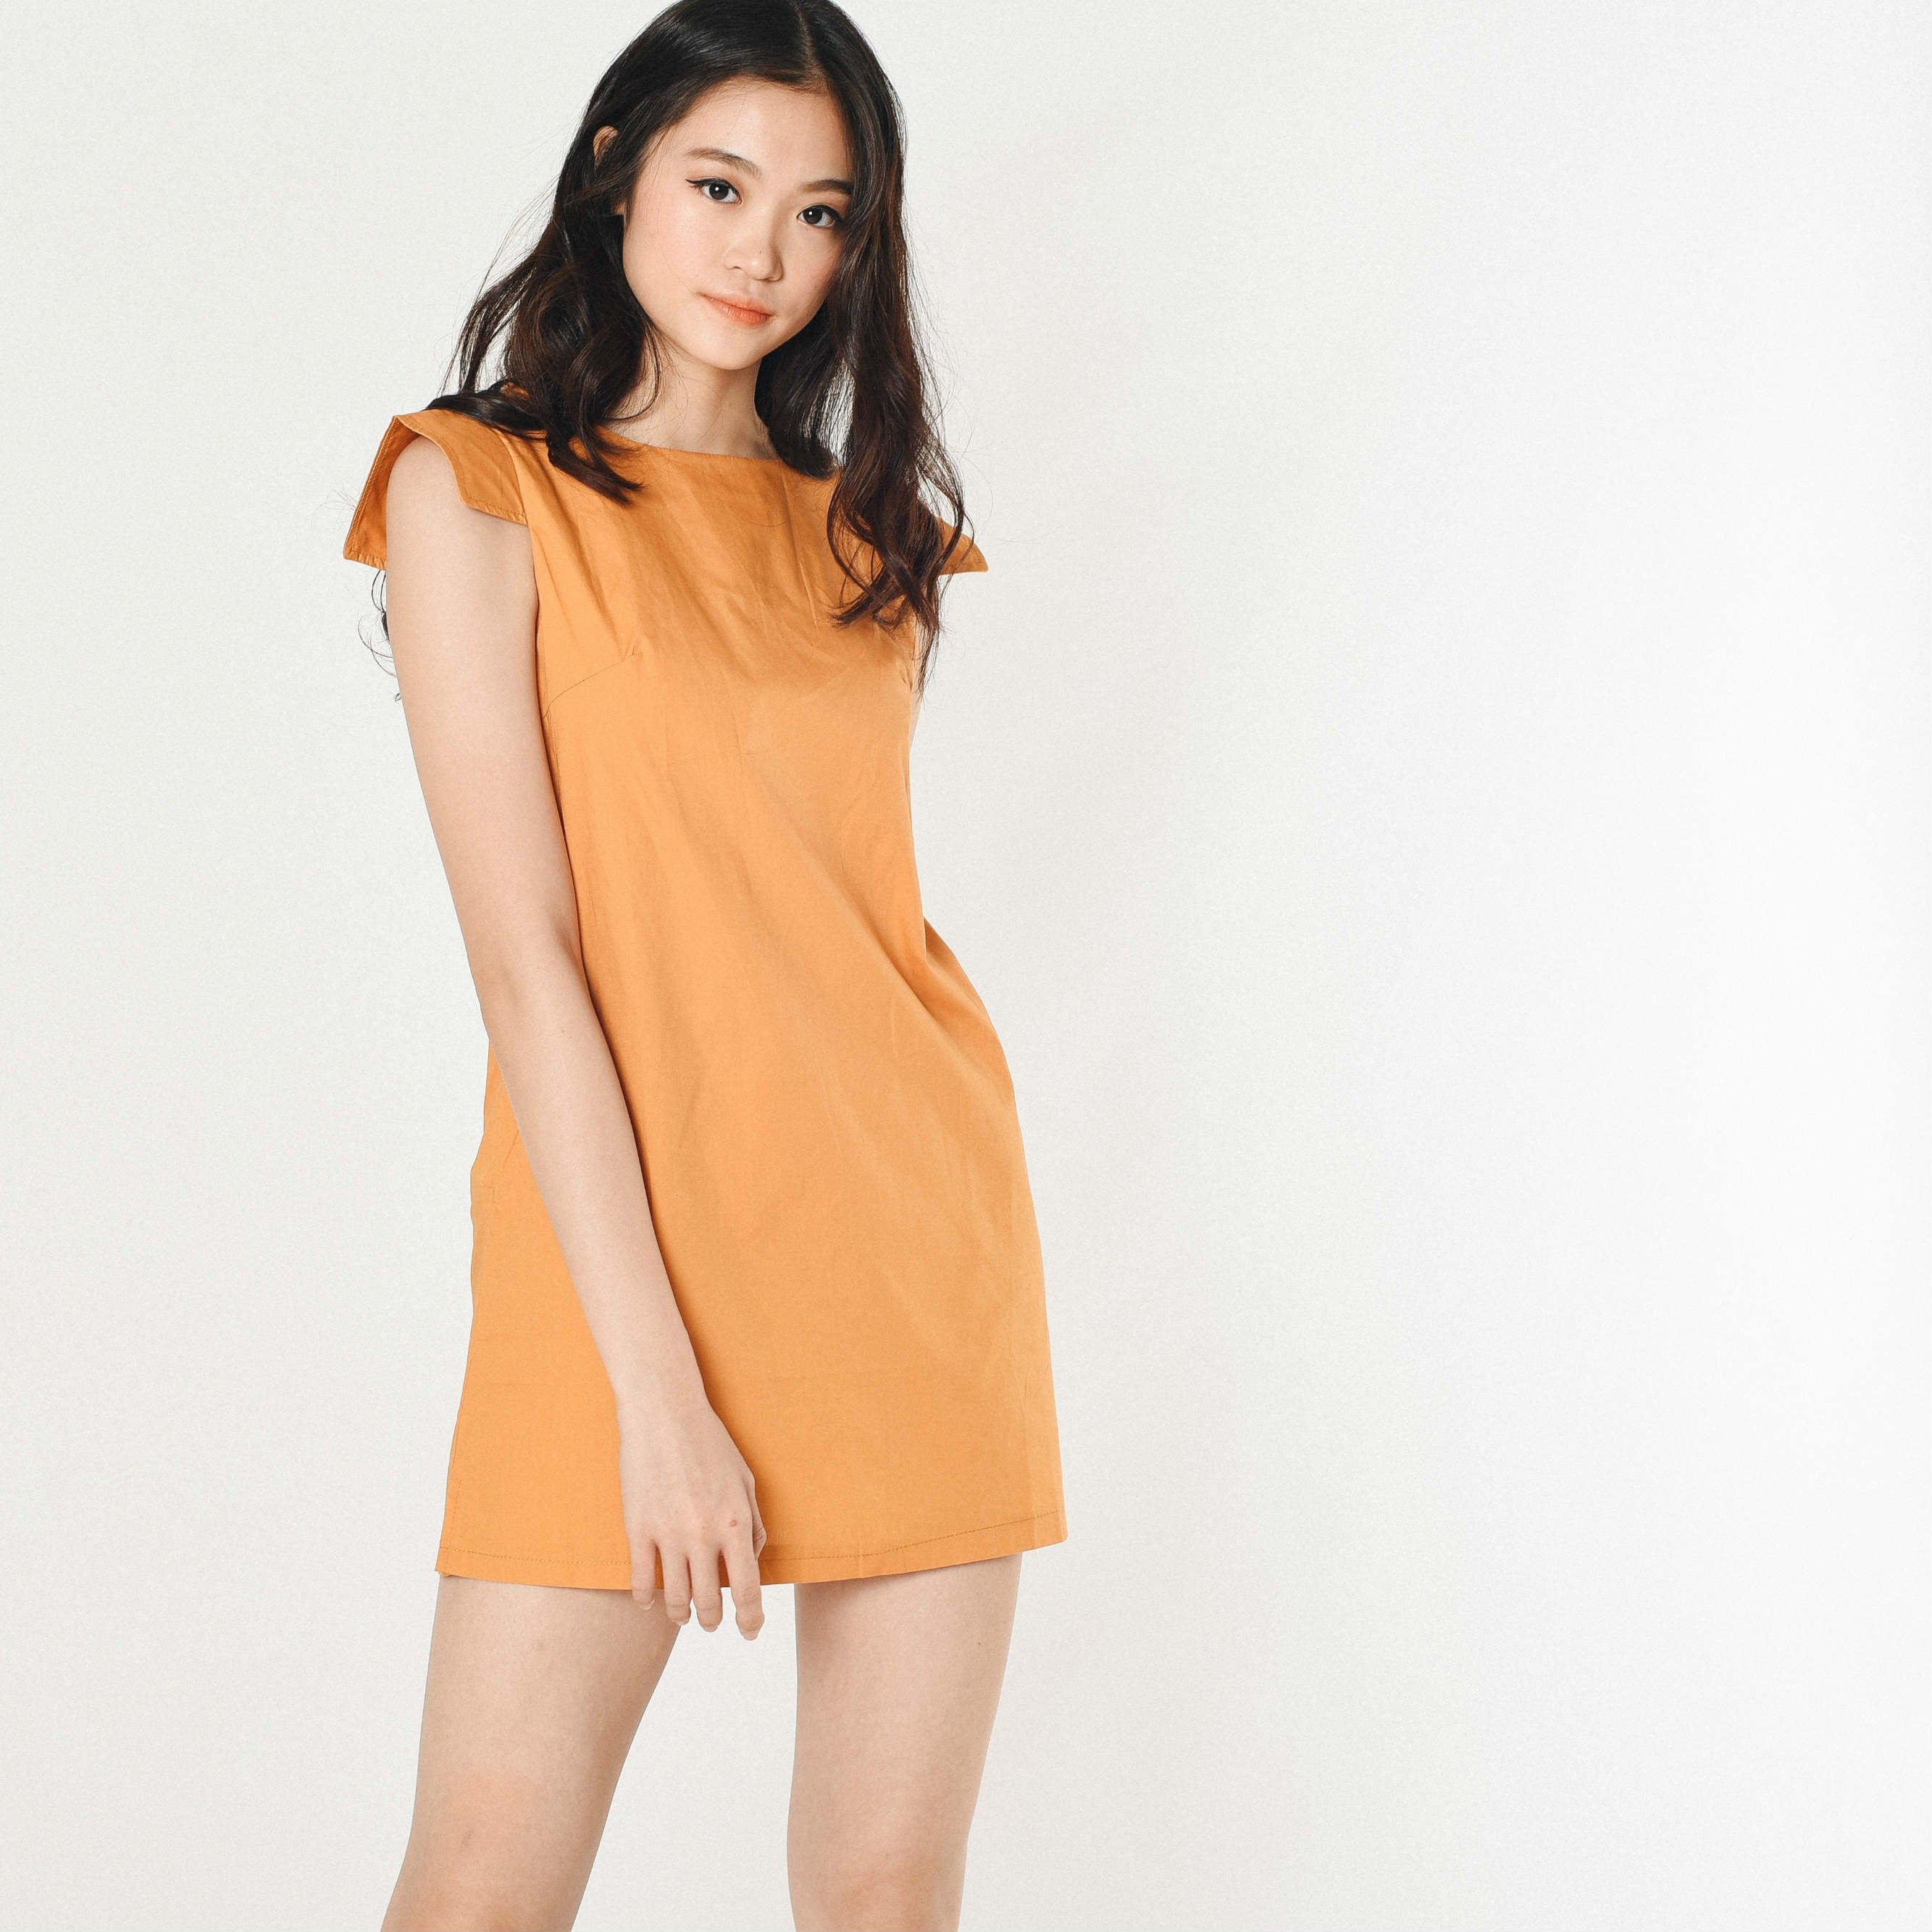 Pansy Structured Dress - Mustard